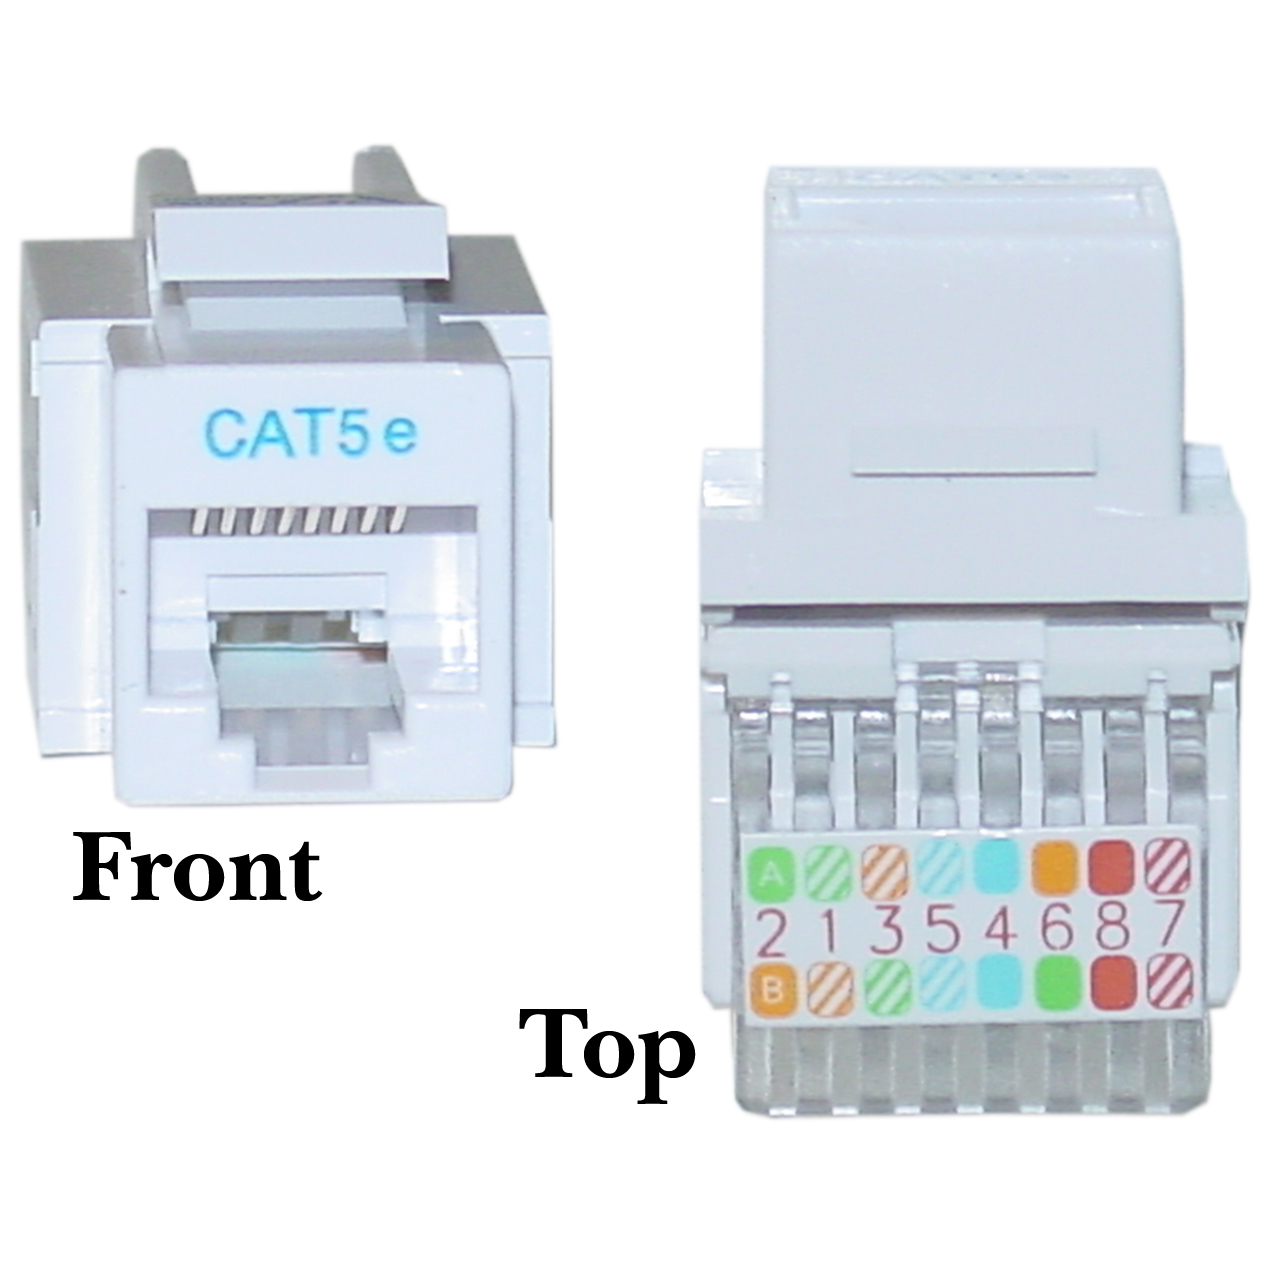 Cat5e Wall Jack Wiring Diagram Guide And Troubleshooting Of Cat 6 Data Get Free Image About On T568b Rj45 Outlet